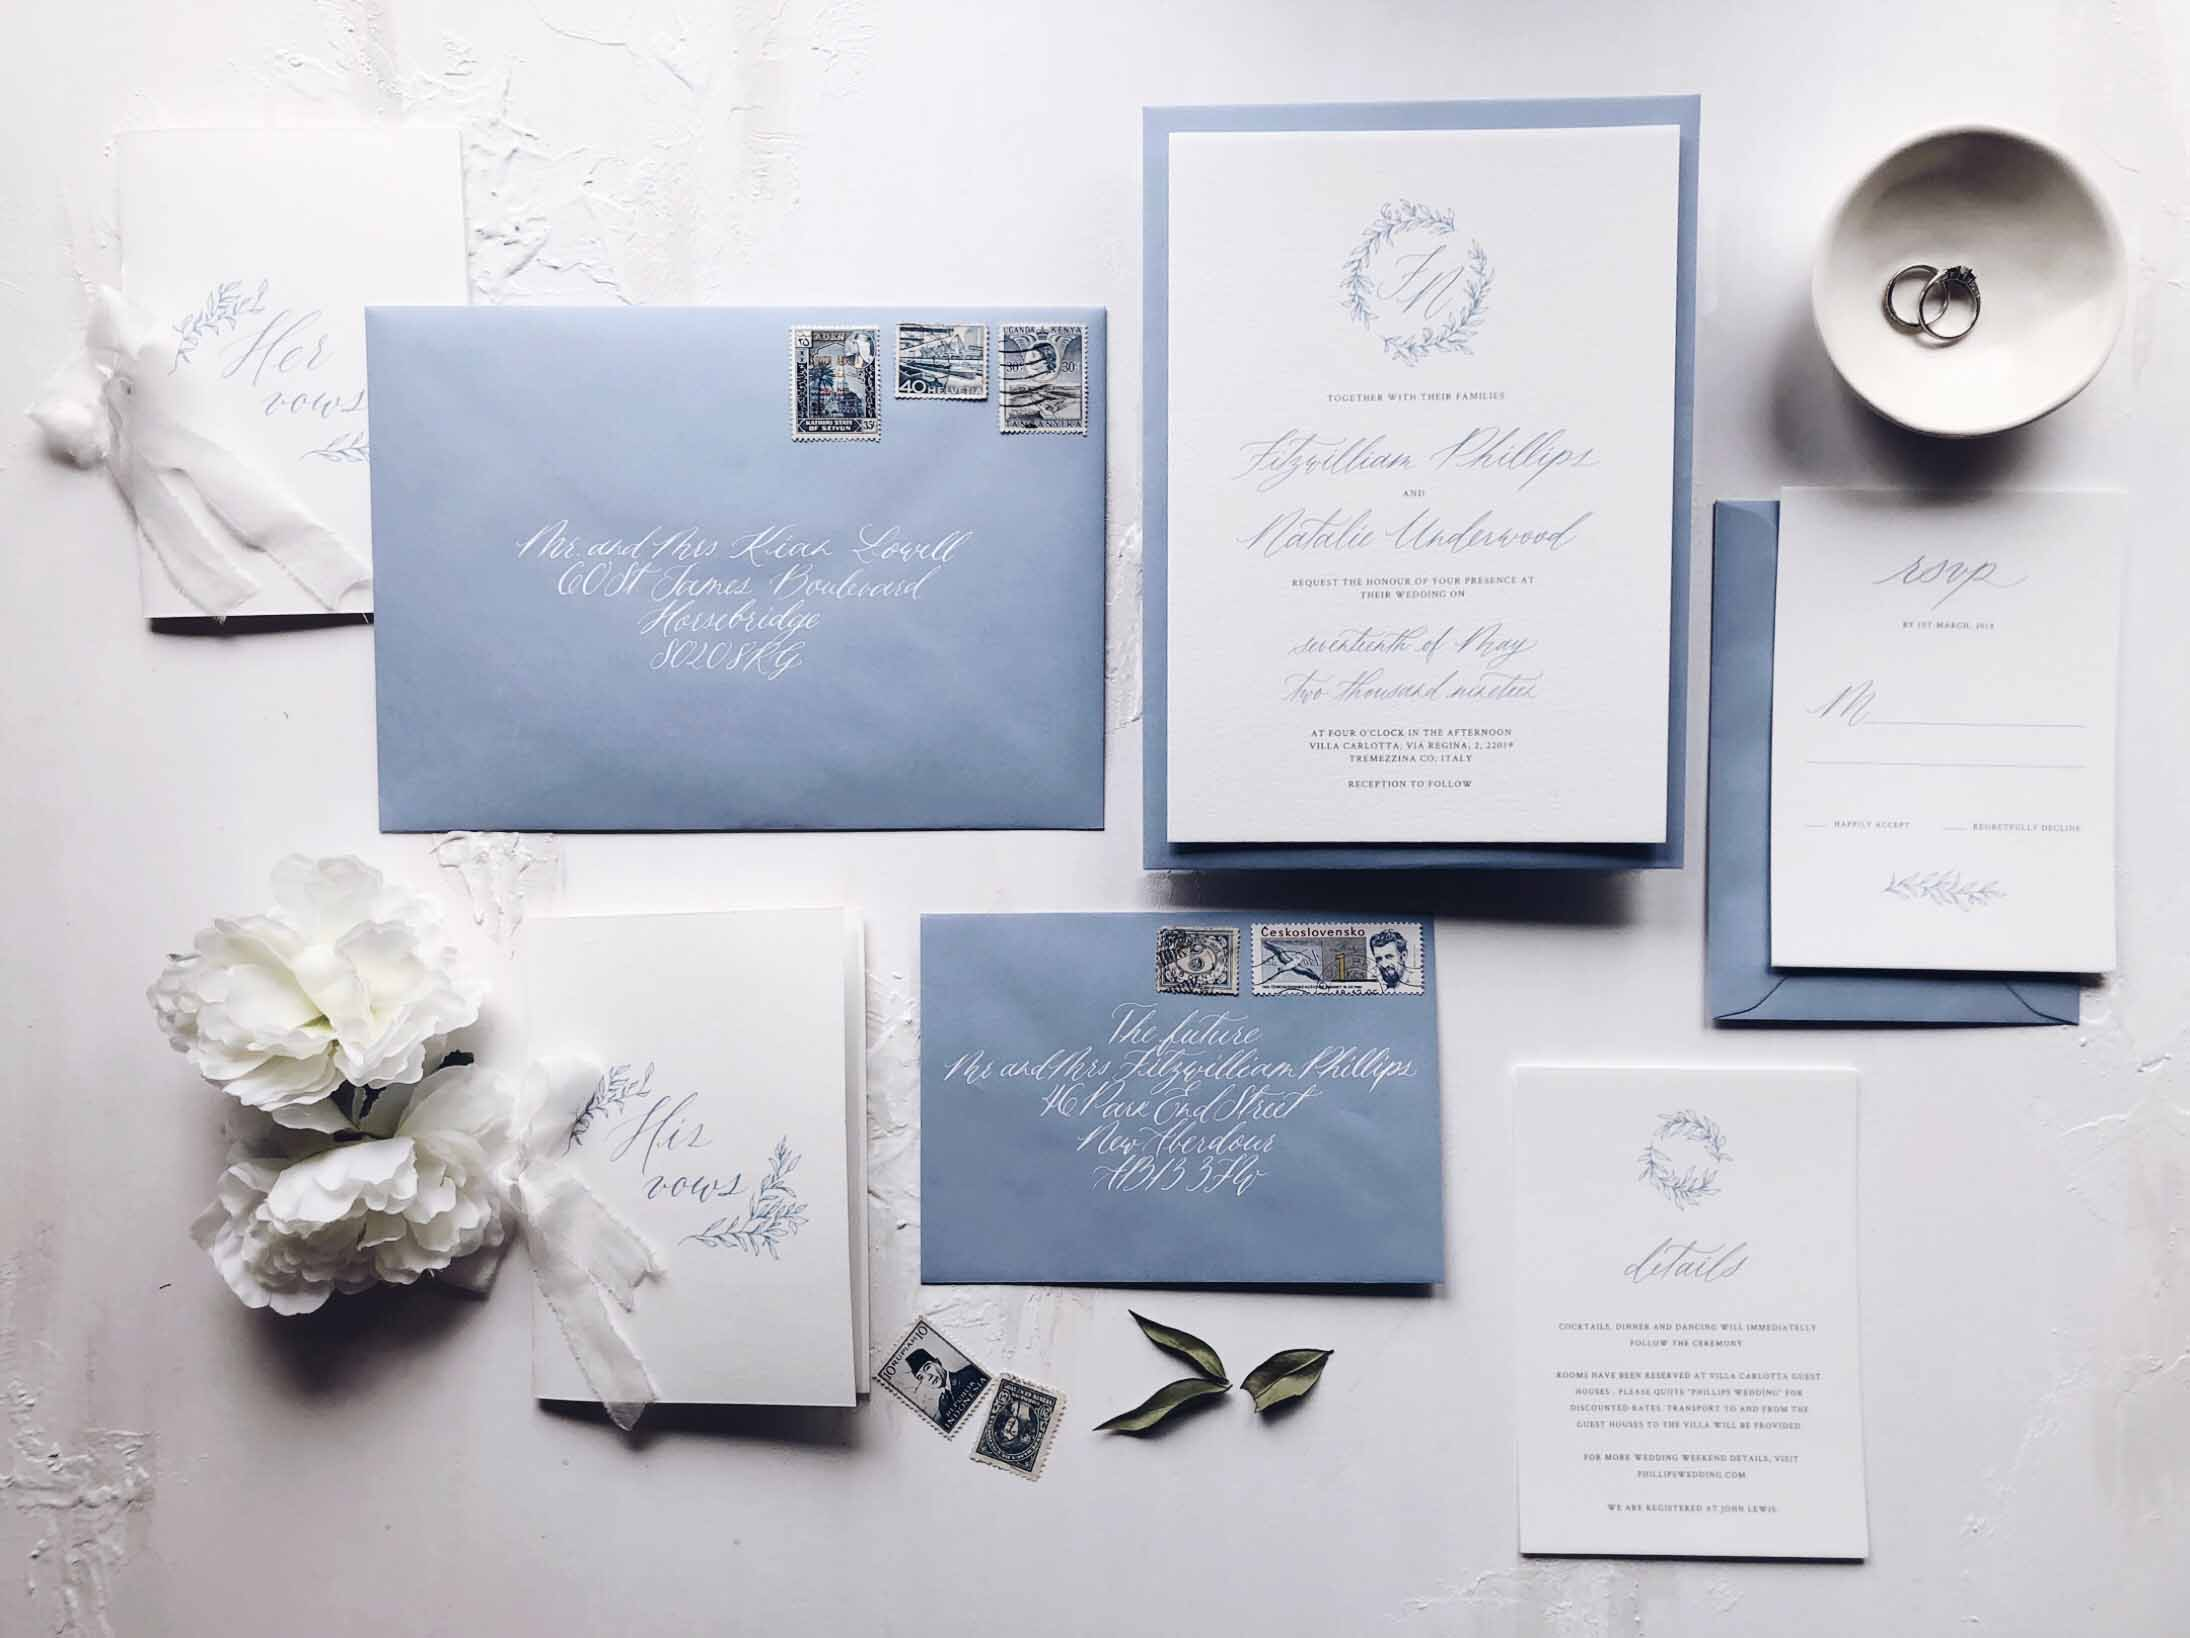 Fine art wedding invitations with hand crafted illustration and calligraphy detail